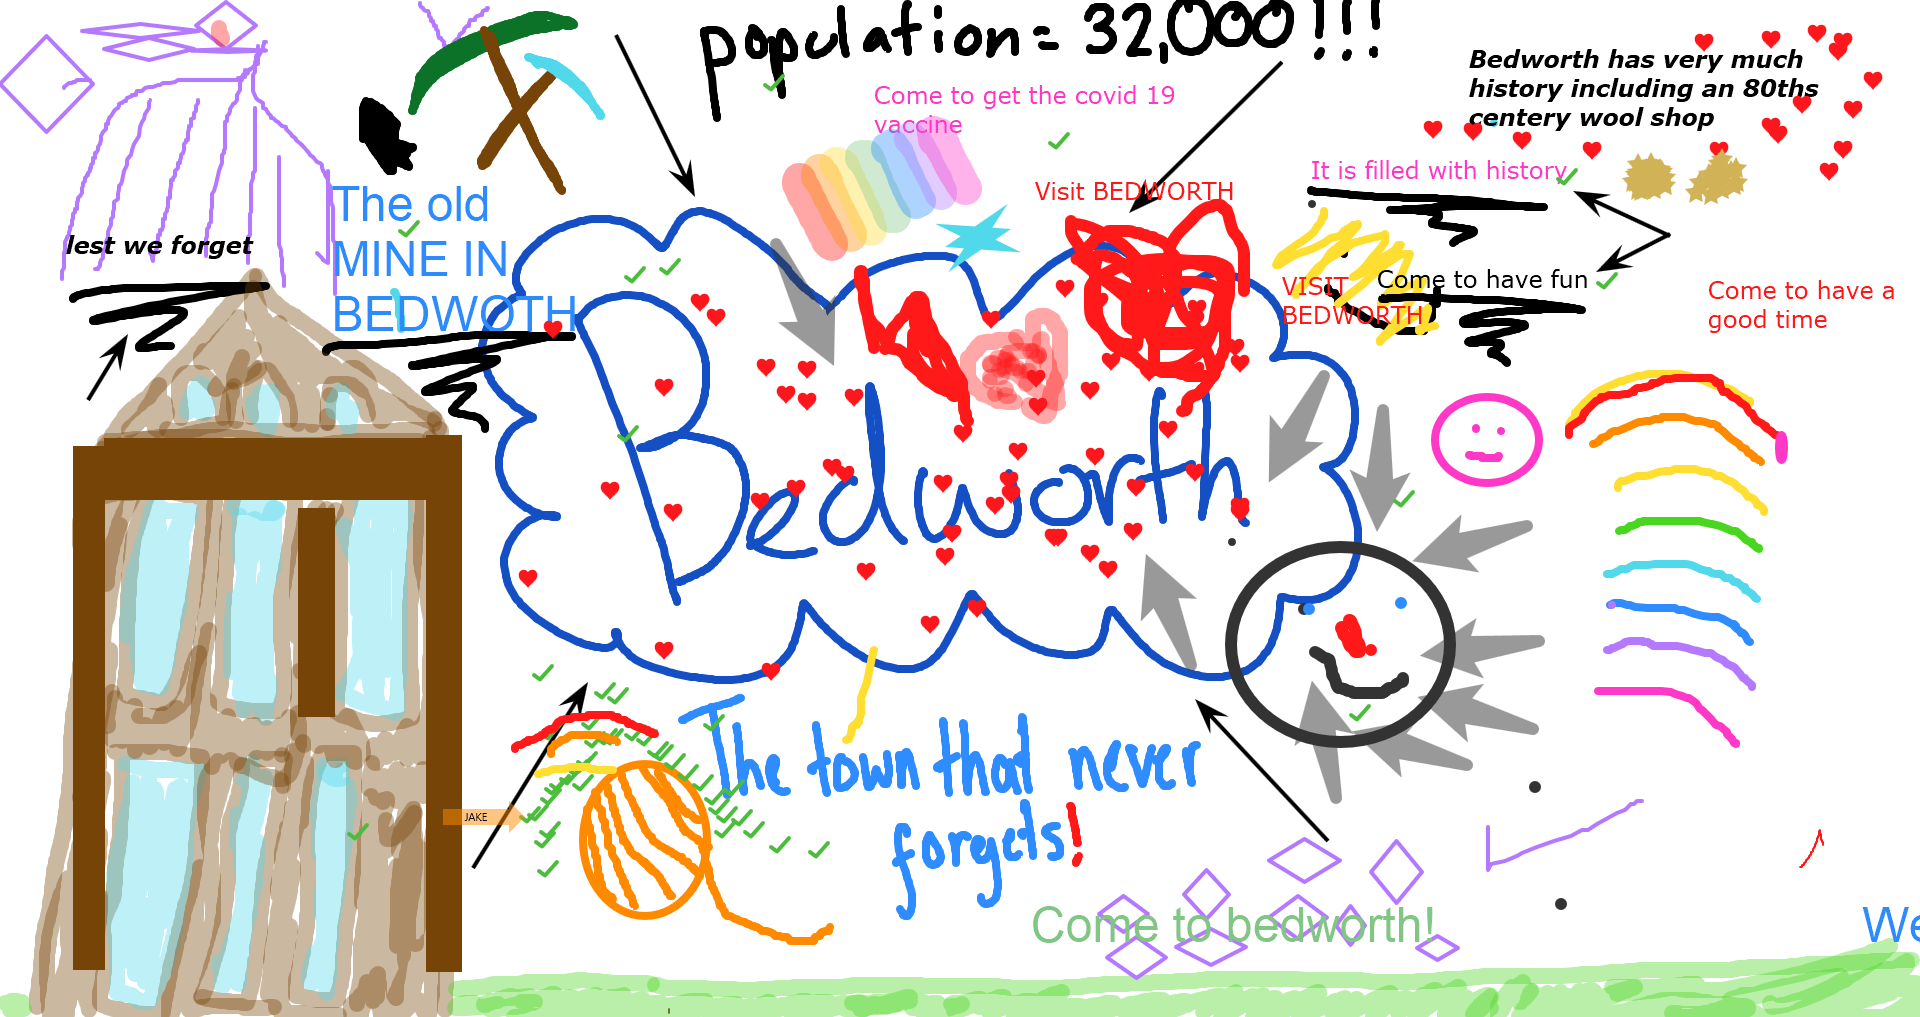 Poster advertising Bedworth with landmarks, old culture and facts